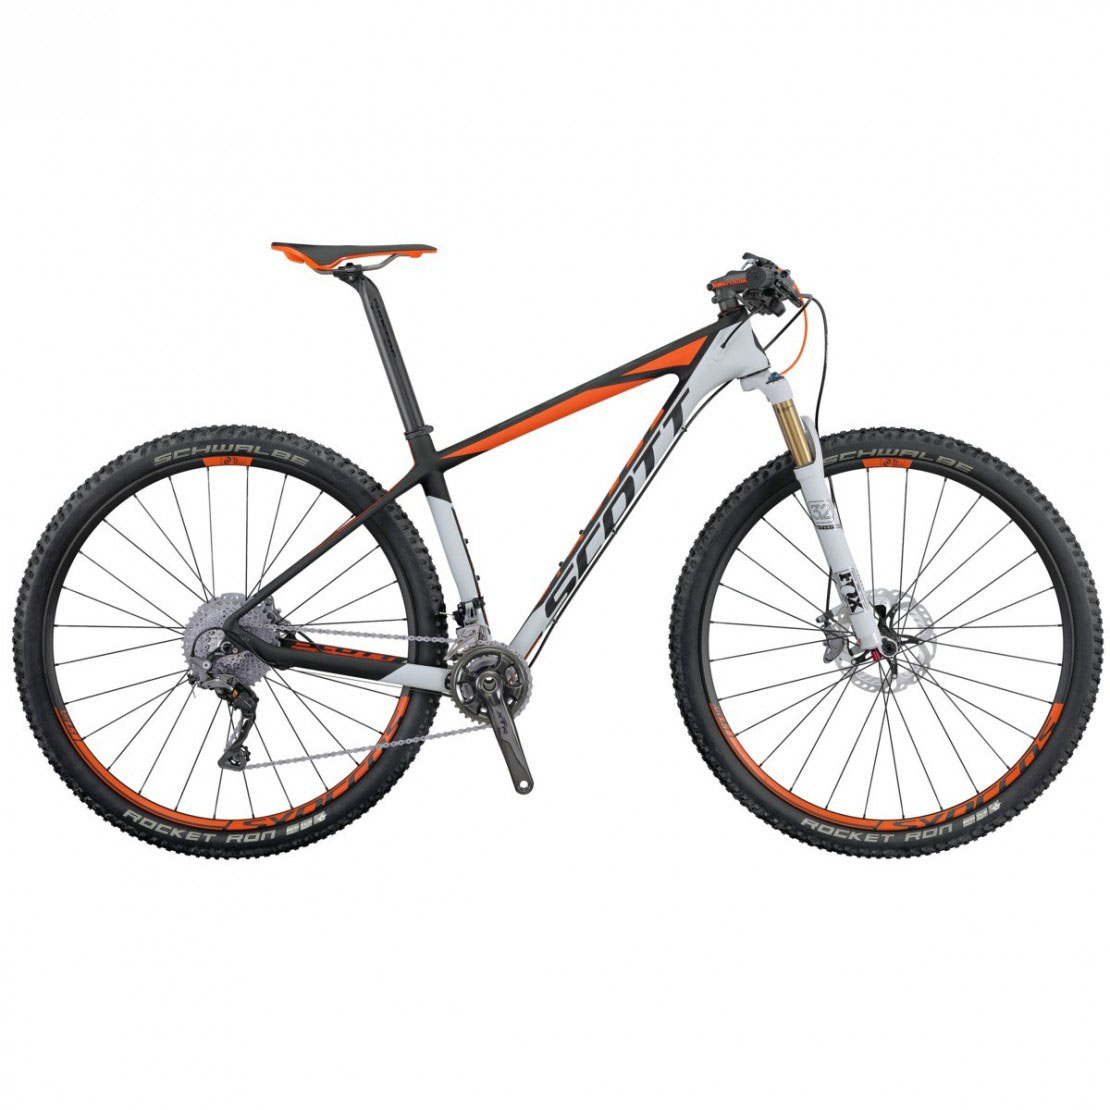 Scale 900 Premium 2017 - 29er Mountain Bike